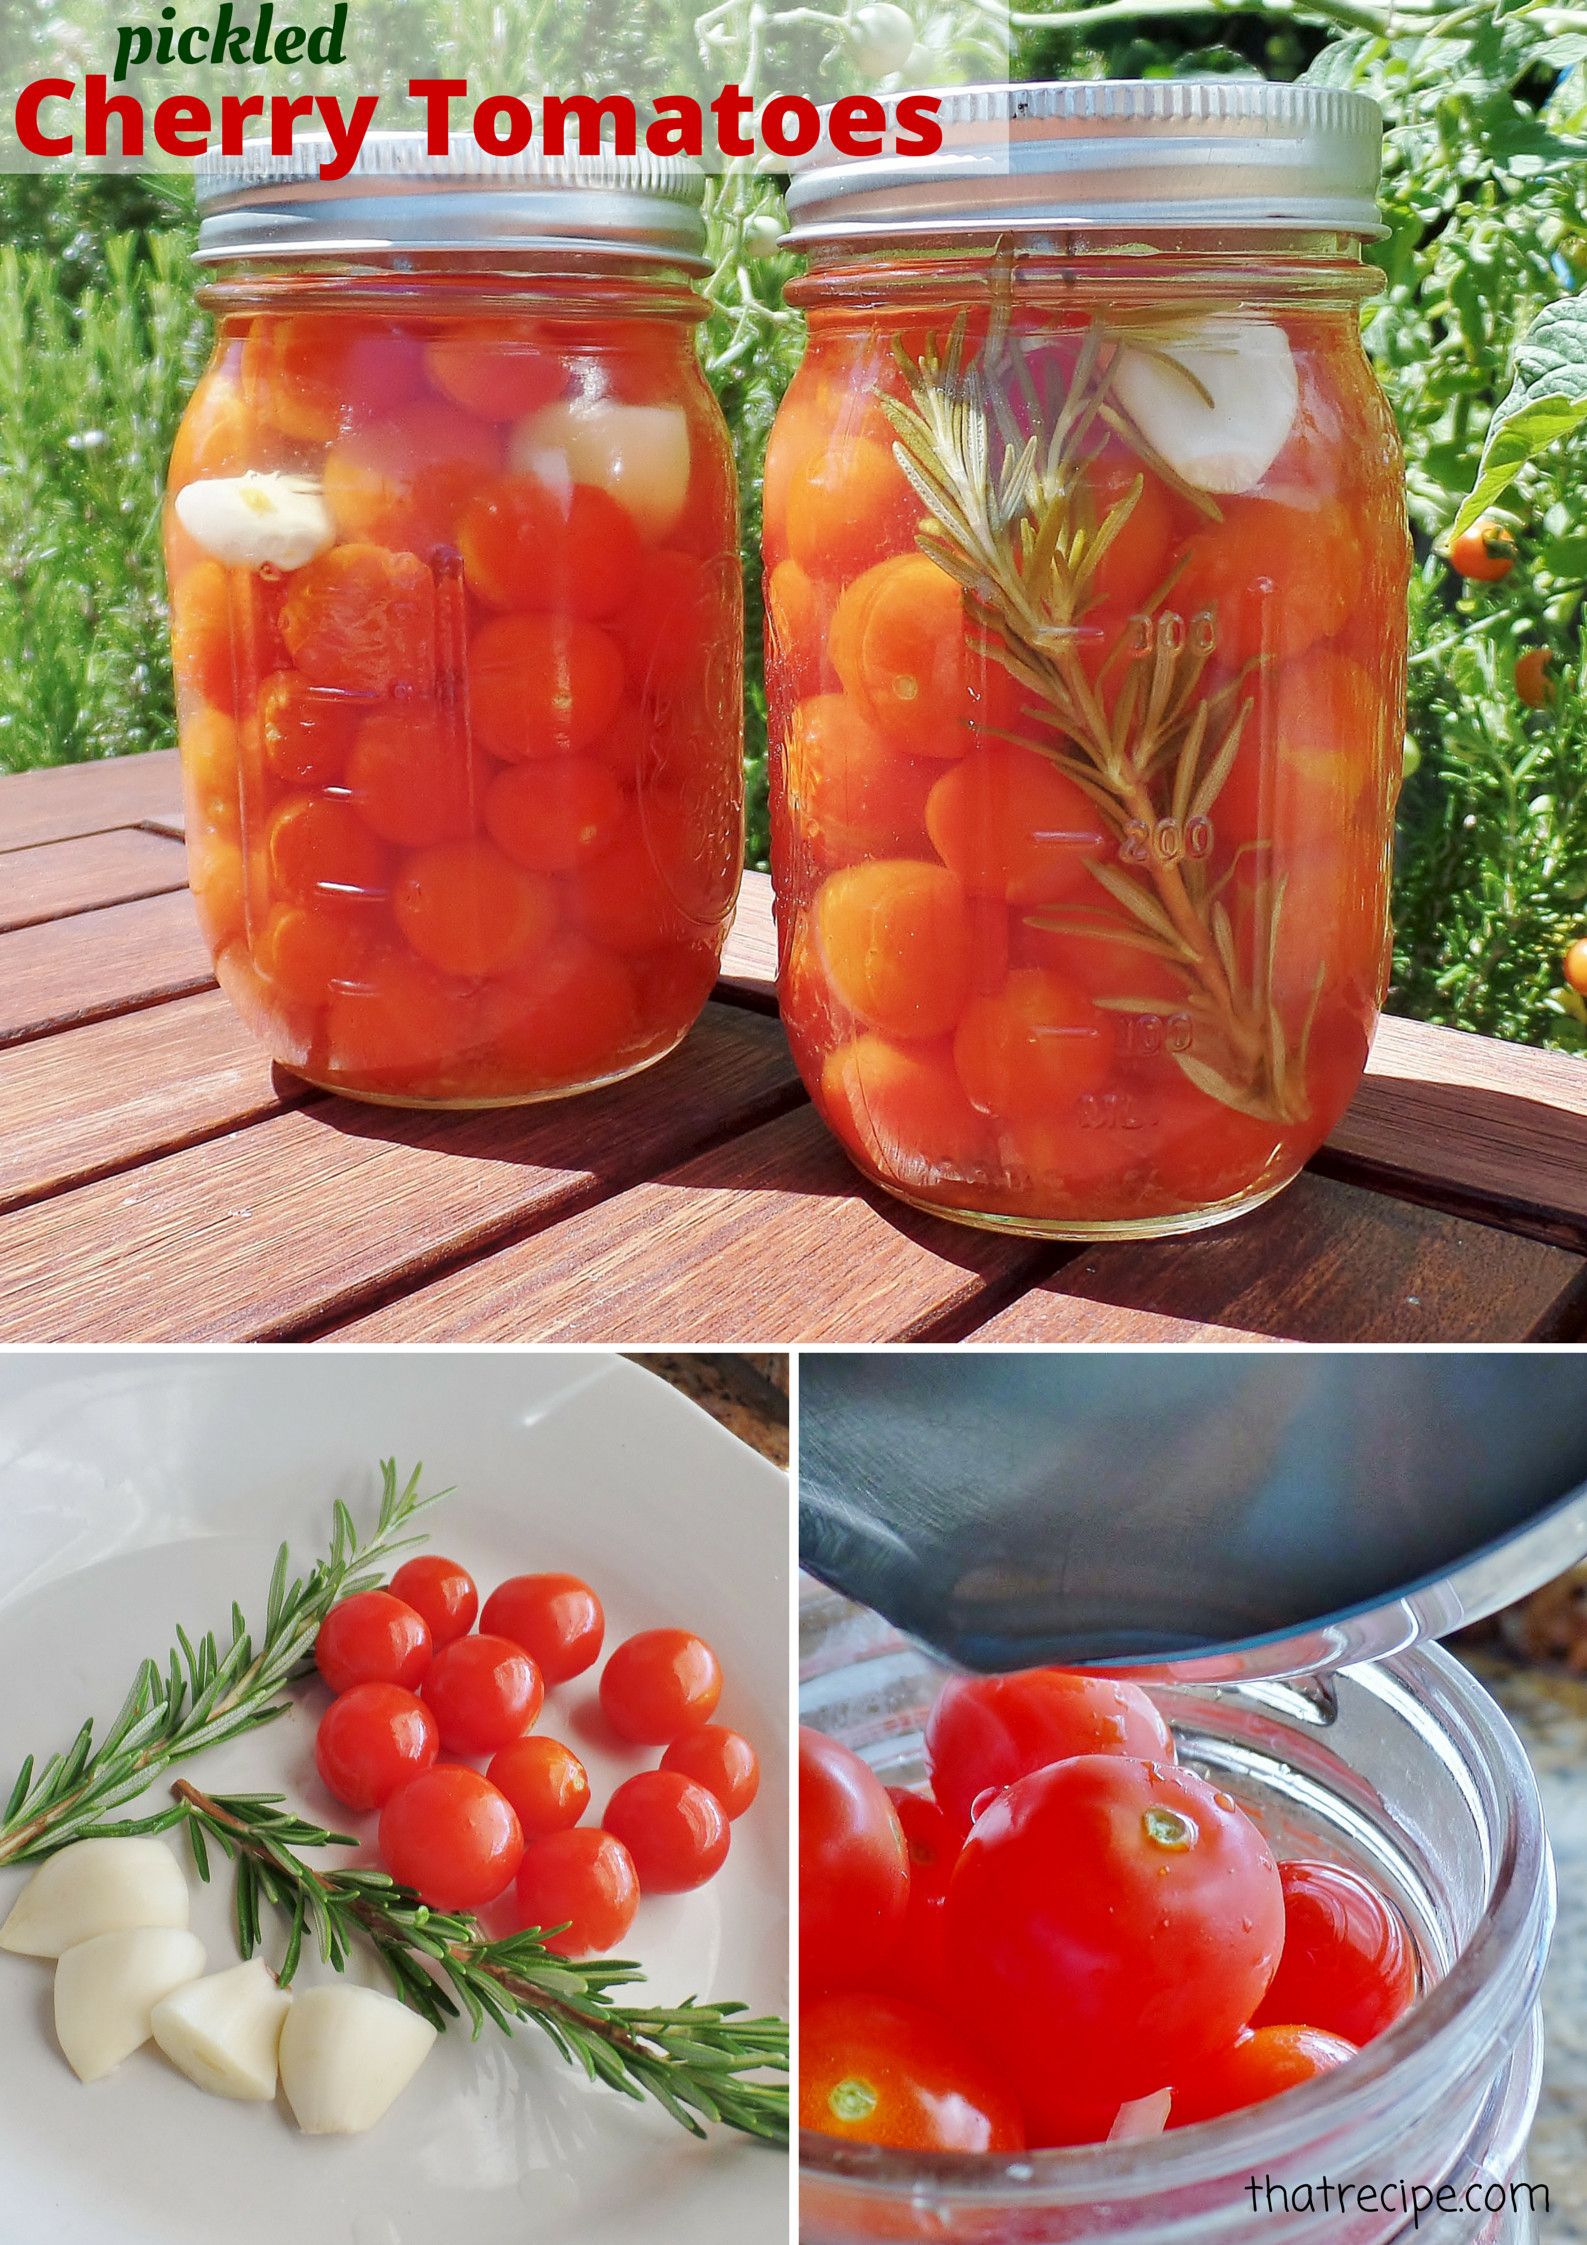 Canning Cherry Tomatoes Recipes  Pickled Cherry Tomatoes Recipe